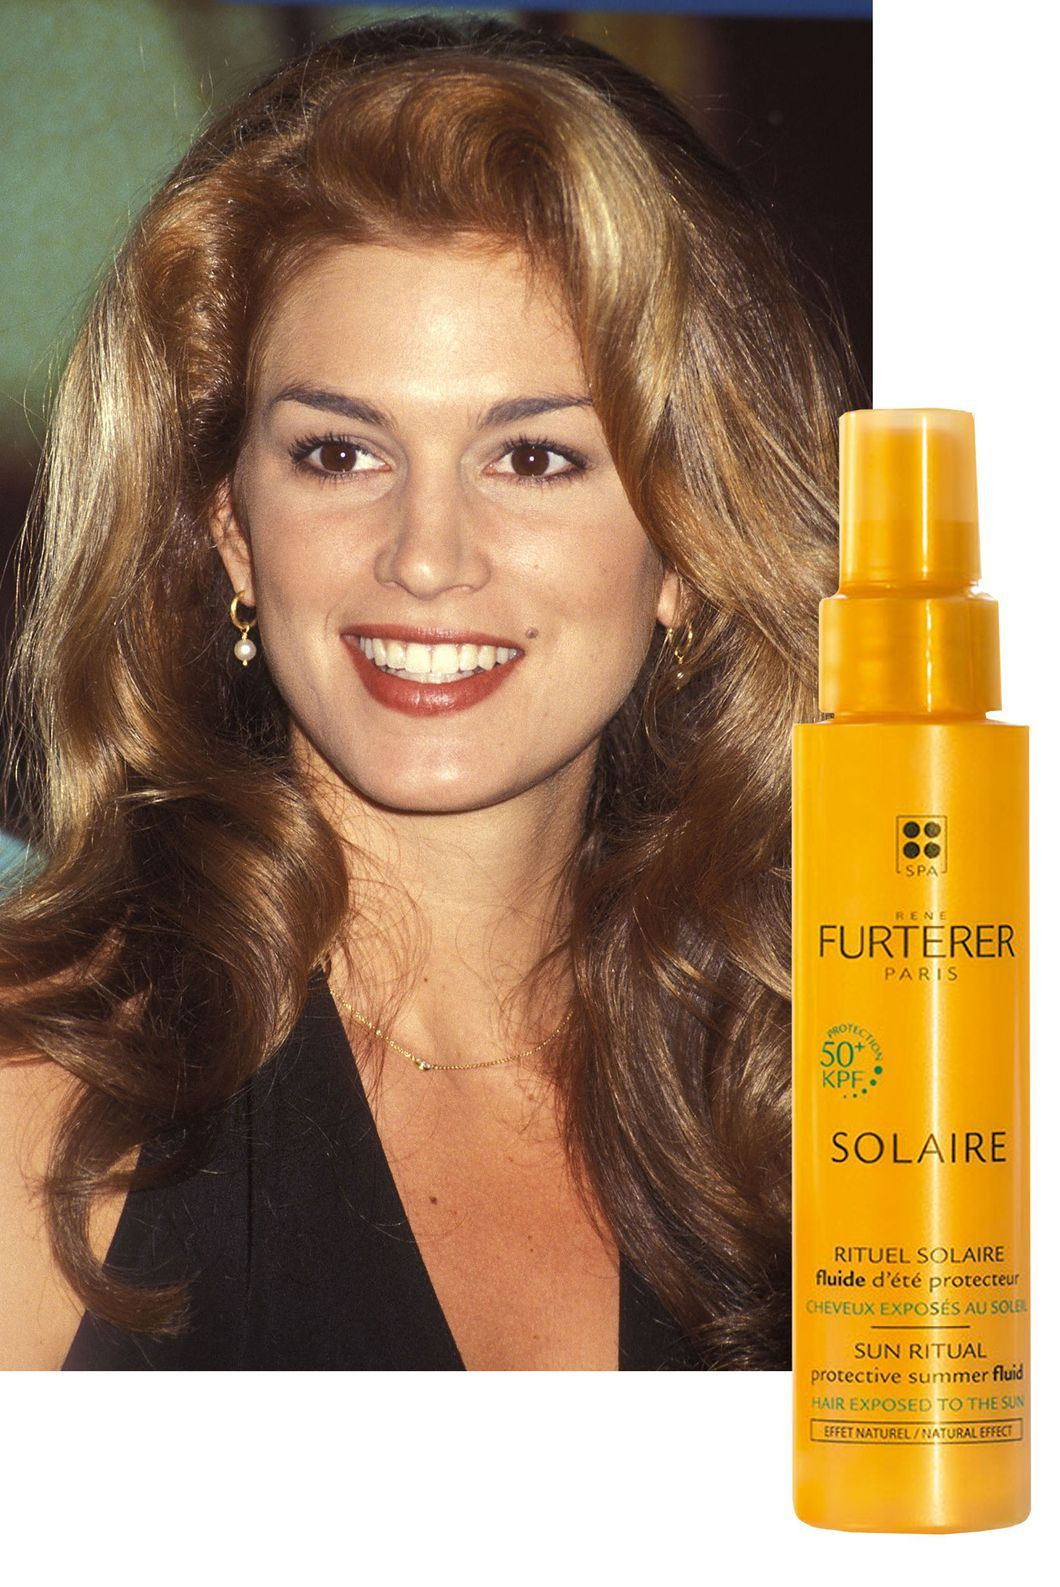 The 15 Beauty Products to Steal From Cindy Crawford's Glam